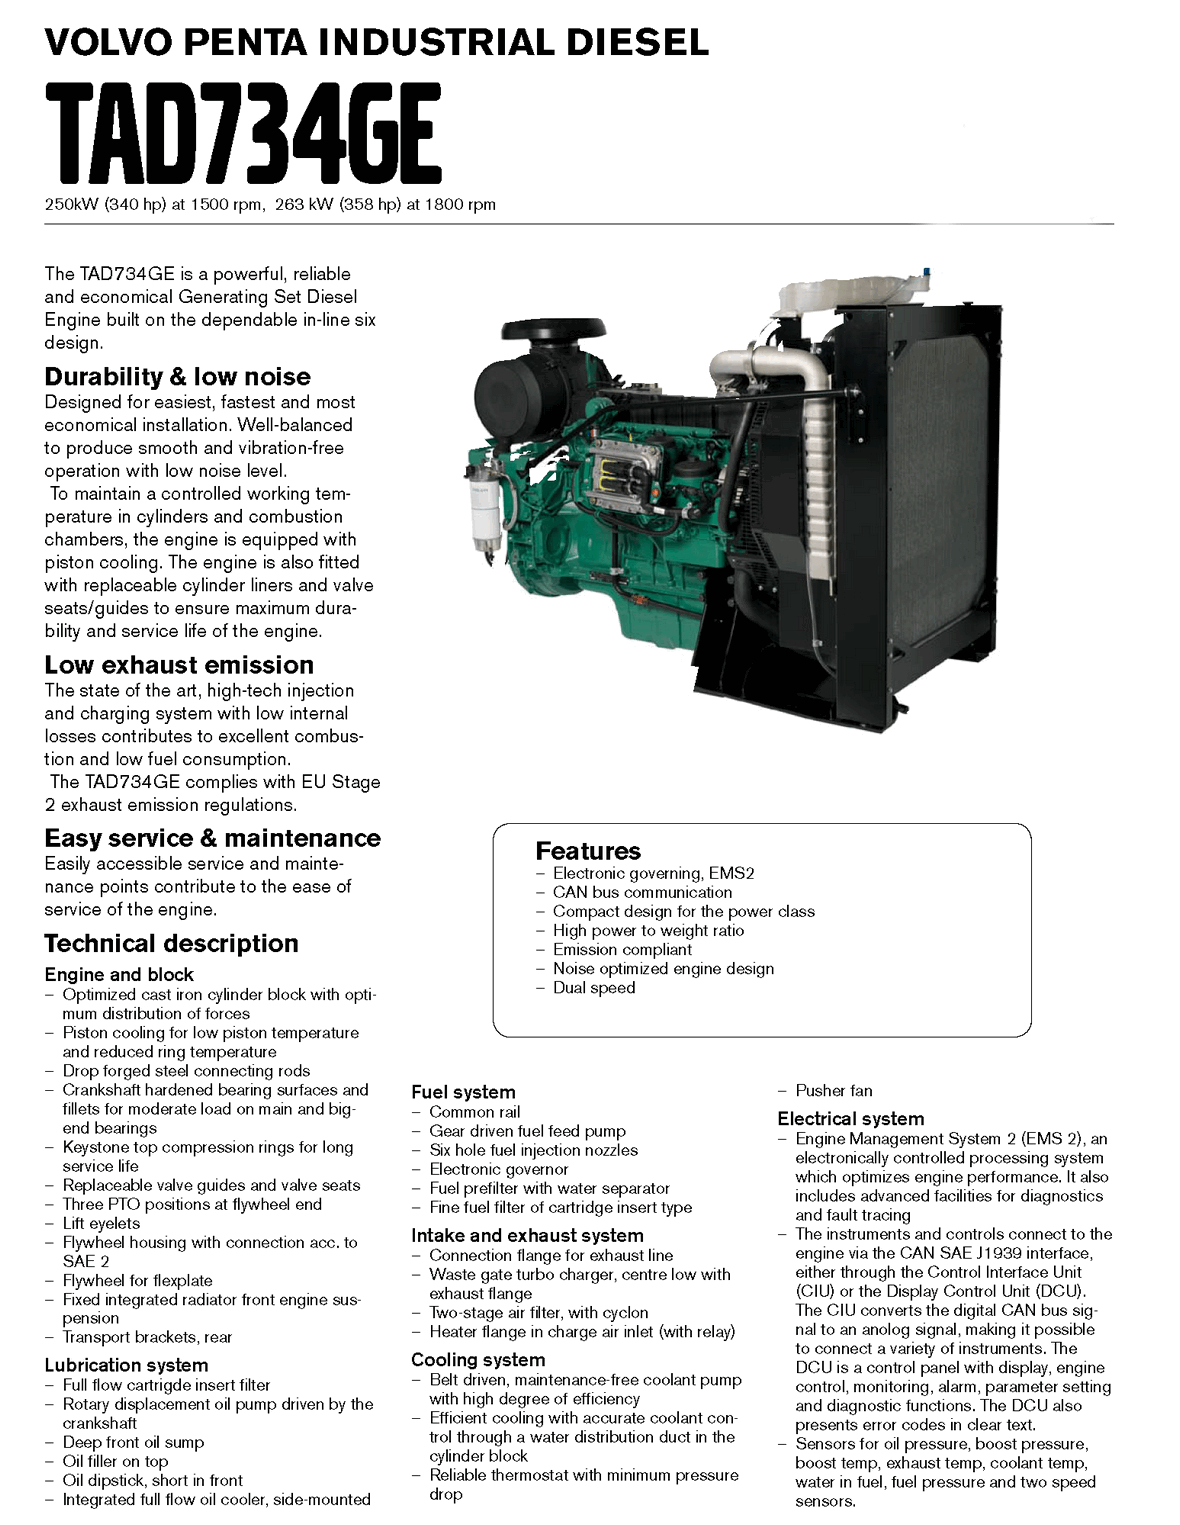 spec_engine_volvo_tad734ge_1.png